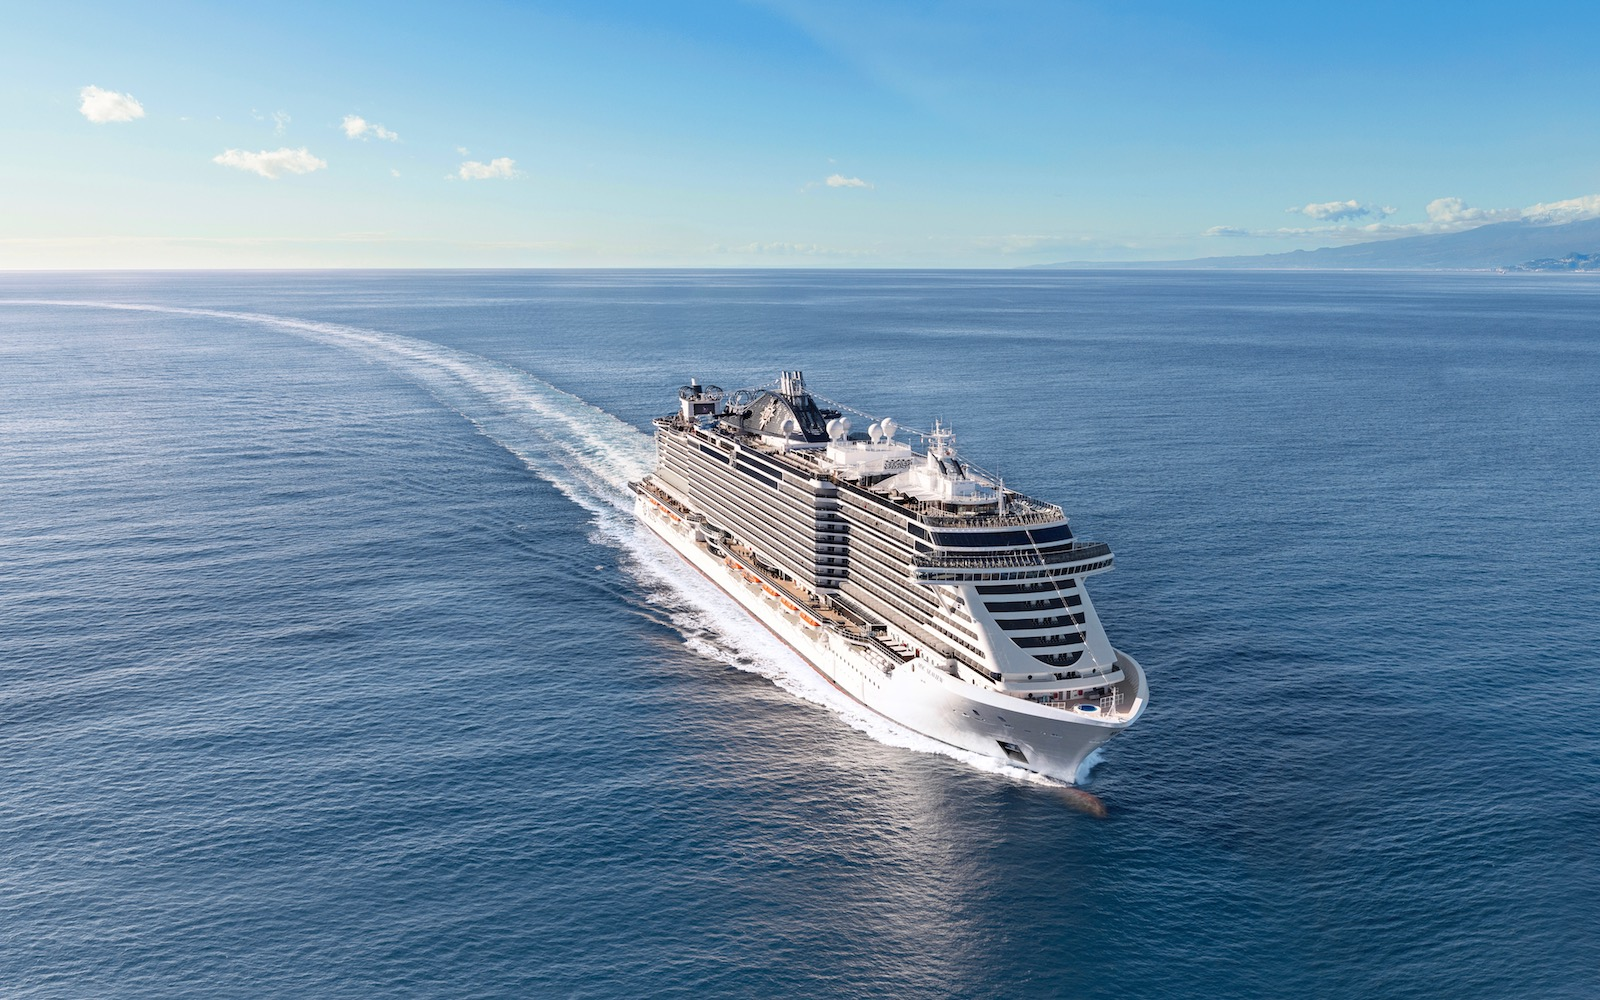 A Look Inside MSC Seaview, the Brand New Luxury Megaship from Italy's Favorite Cruise Line